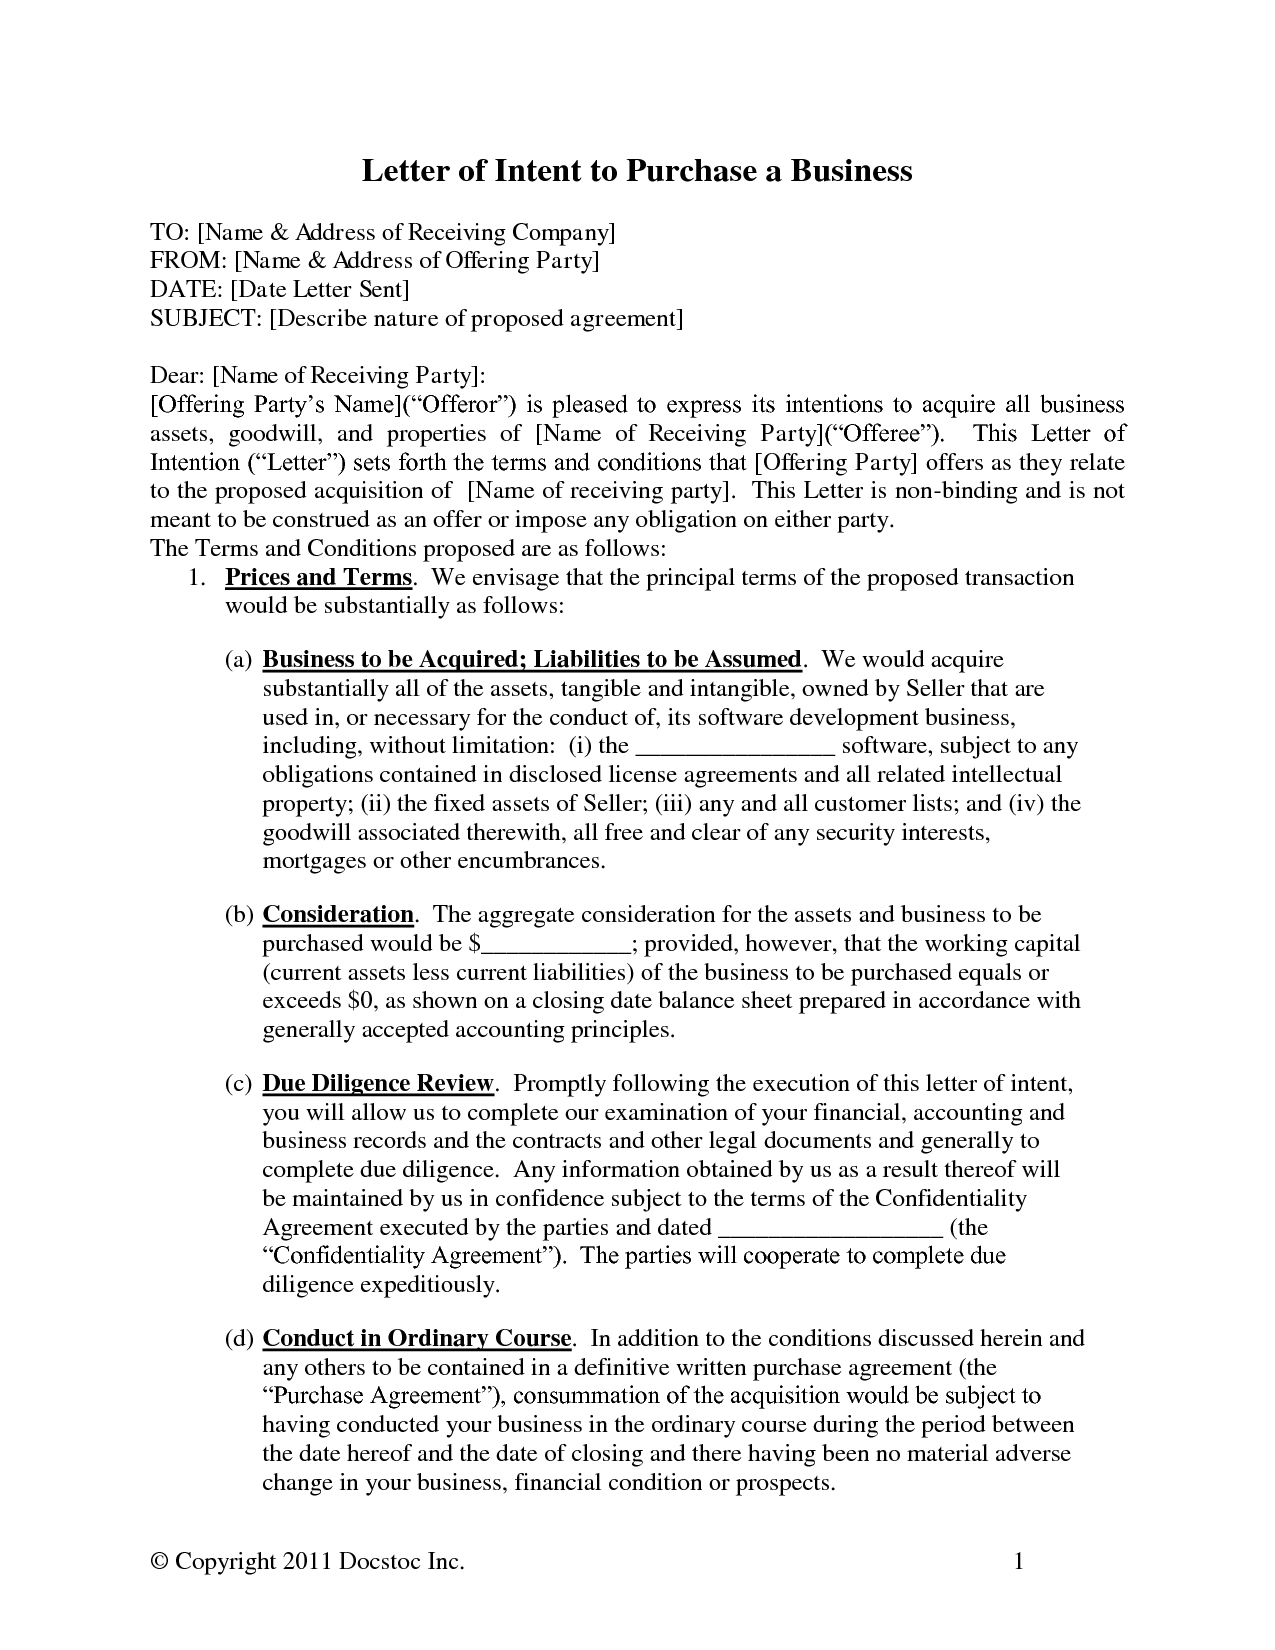 Letter Of Intent to Buy A Business Template - Acquisition Business Letters